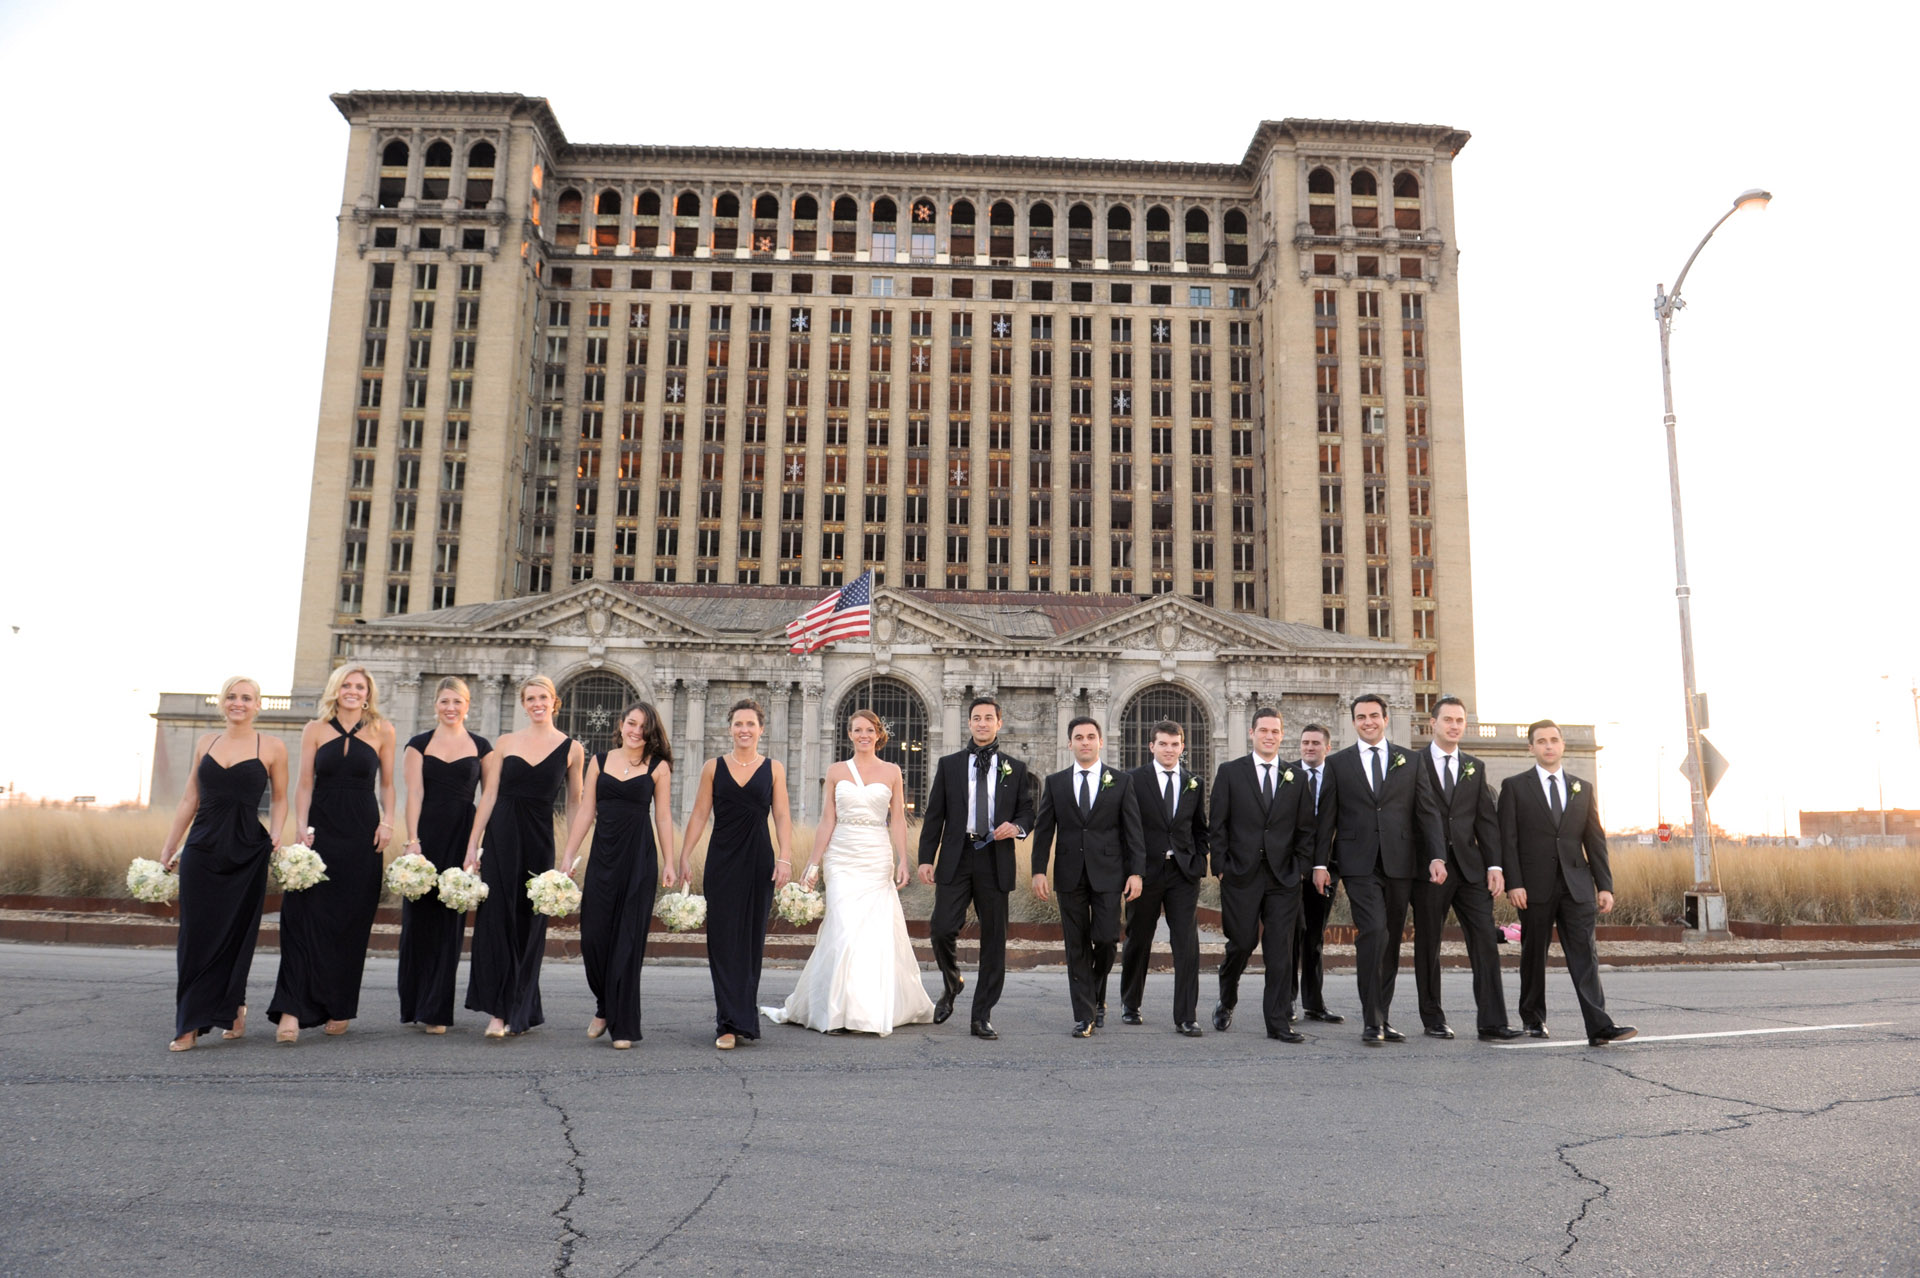 The Historic church Sweetest Heart of Mary and the Dearborn Inn of Detroit's historic church in Detroit and Dearborn, Michigan wedding photographer's photo of the photo of the wedding party at Detroit's historic train station for wedding photos in Detroit, Michigan.